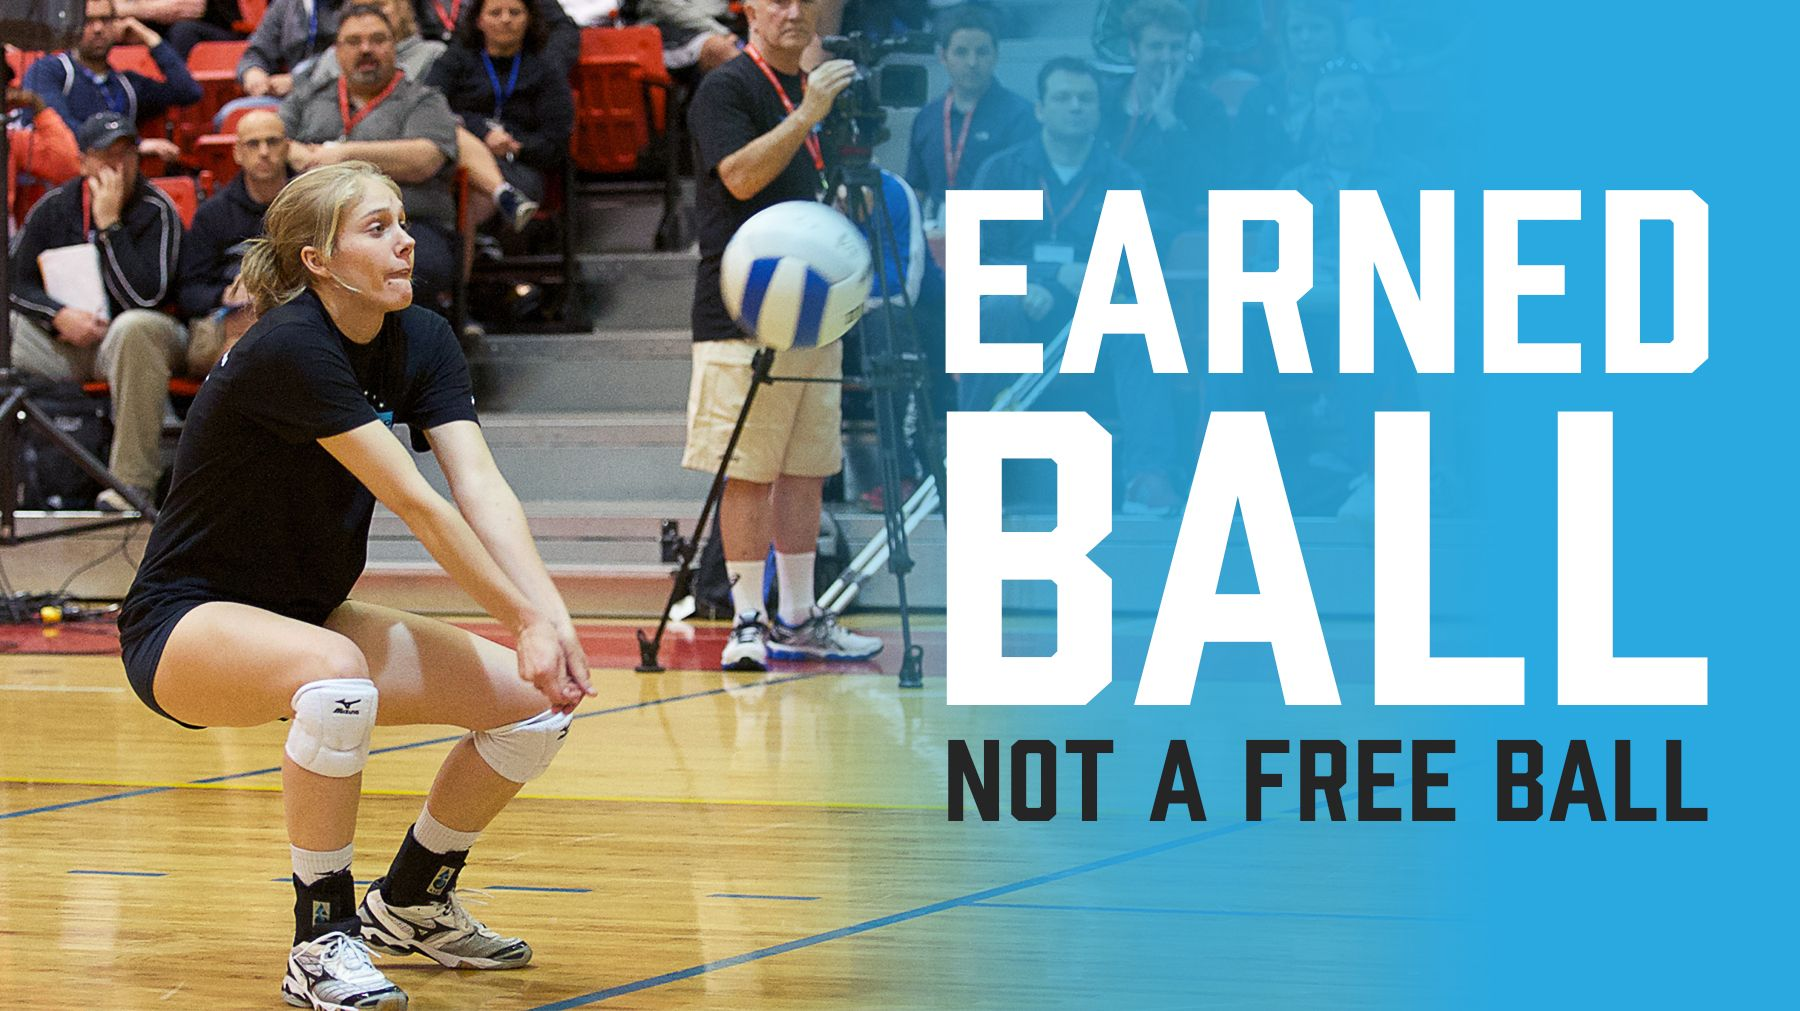 Make It An Earned Ball Not A Free Ball The Art Of Coaching Volleyball Volleyball Drills Coaching Volleyball Youth Volleyball